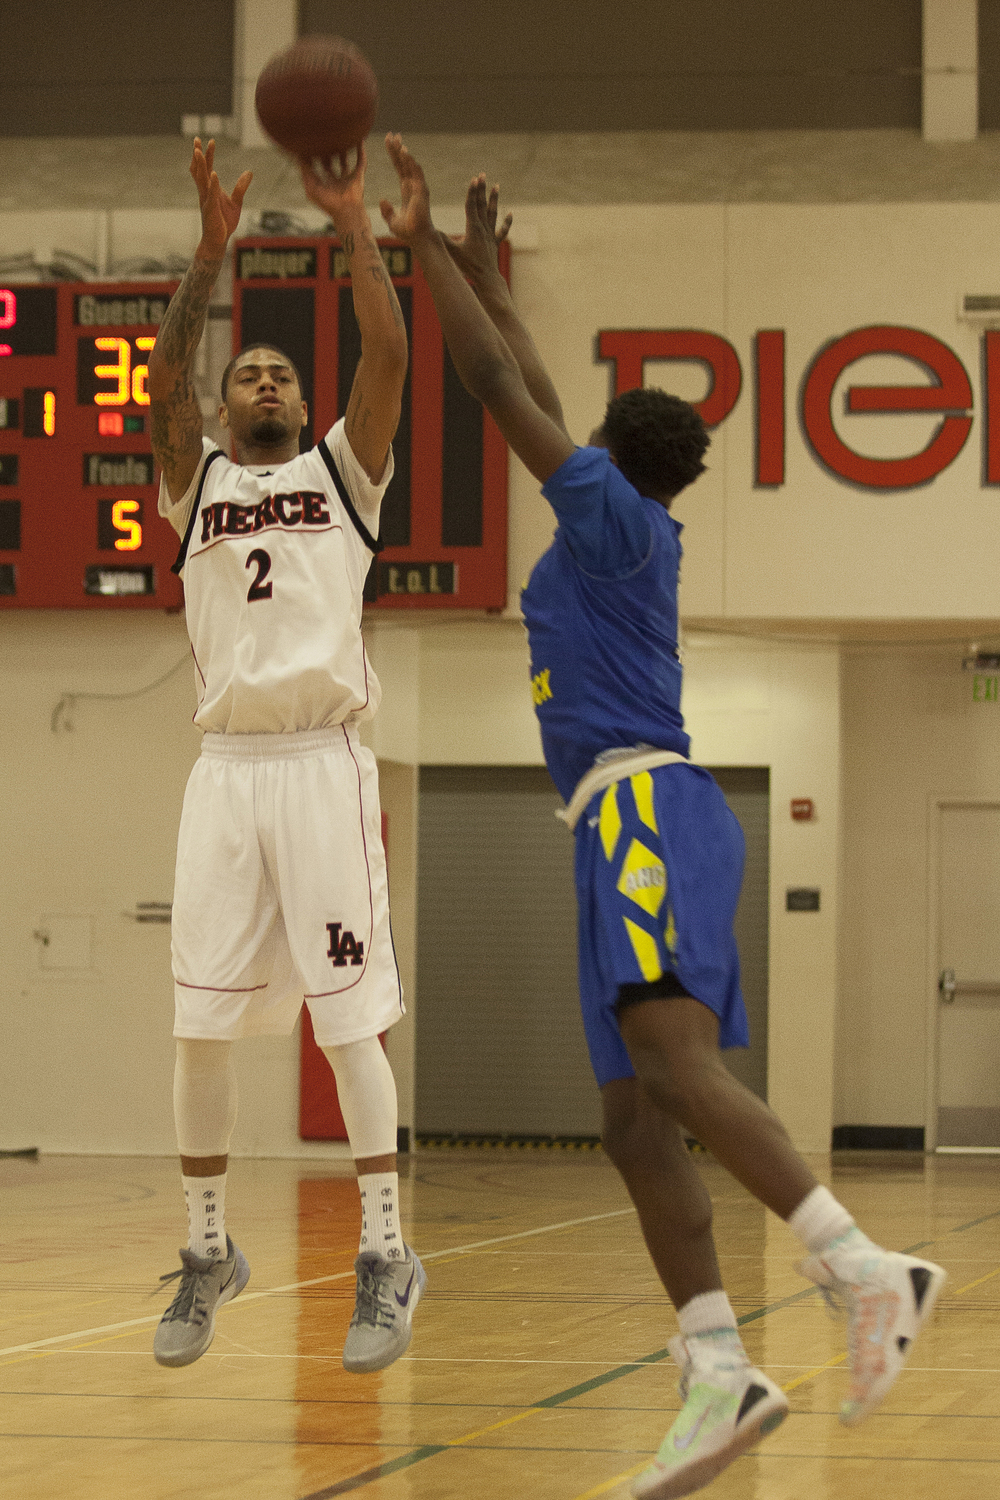 Kenny Stenhouse attempts a jump shot during a home game against Allan Hancock College on Saturday, Feb. 13, 2016 in Woodland Hills, Calif.